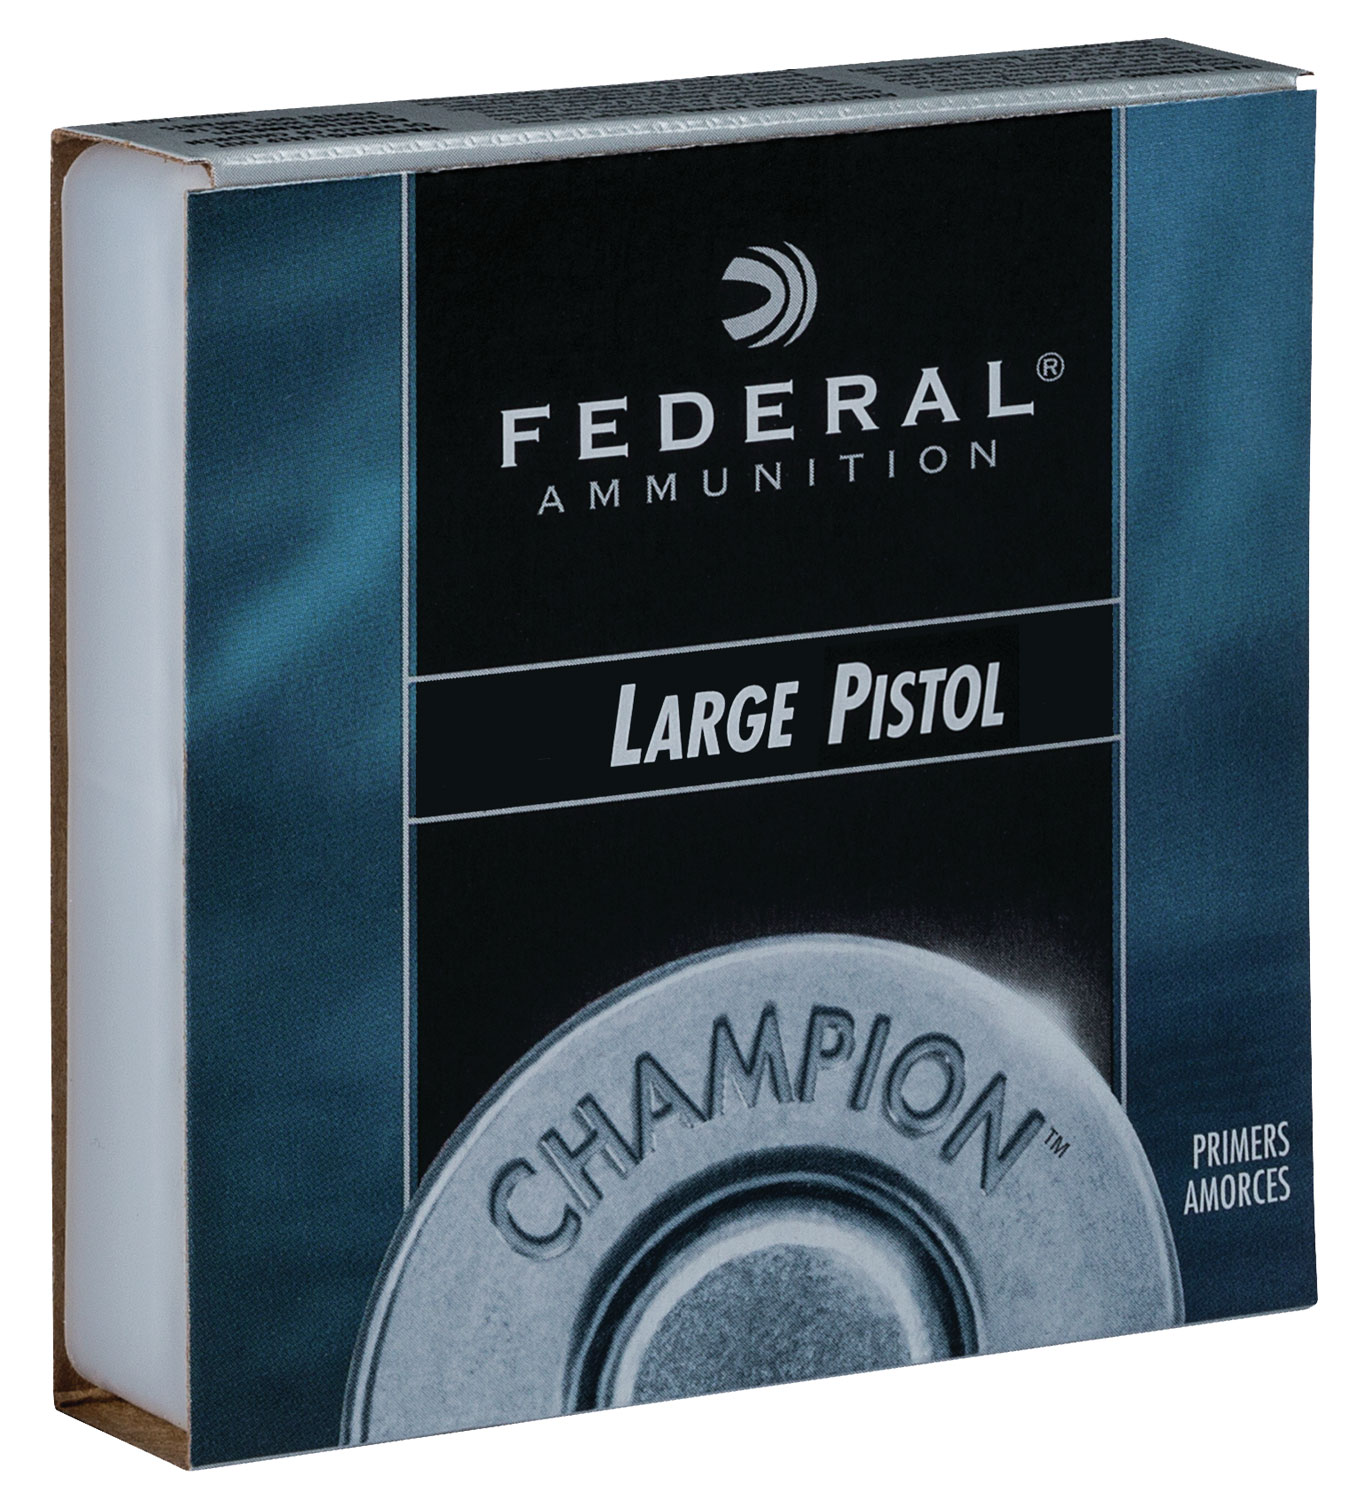 Federal 150 Standard Large Pistol 10 Boxes of 100 Primers